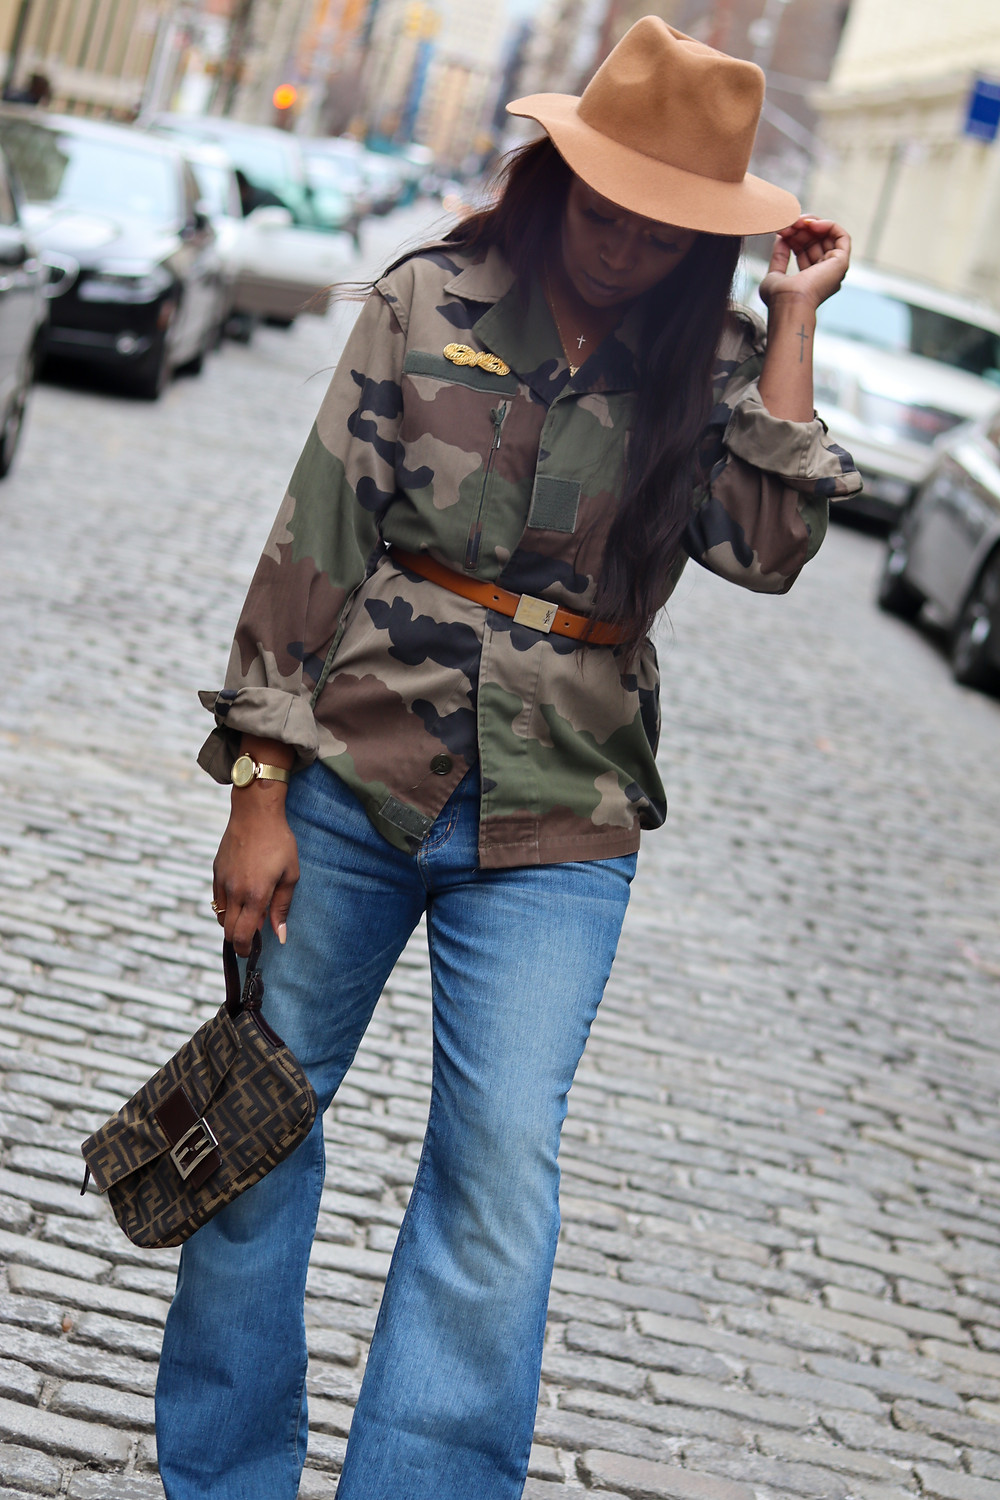 pre-loved fashion, camo jacket, flare denim, fendi bag, fedora,ysl beltFendi zuuca baguette (The Real Real), Christian Dior brooch (The real real), YSL belt ,soho ,nyc, fashion, fashion photography.